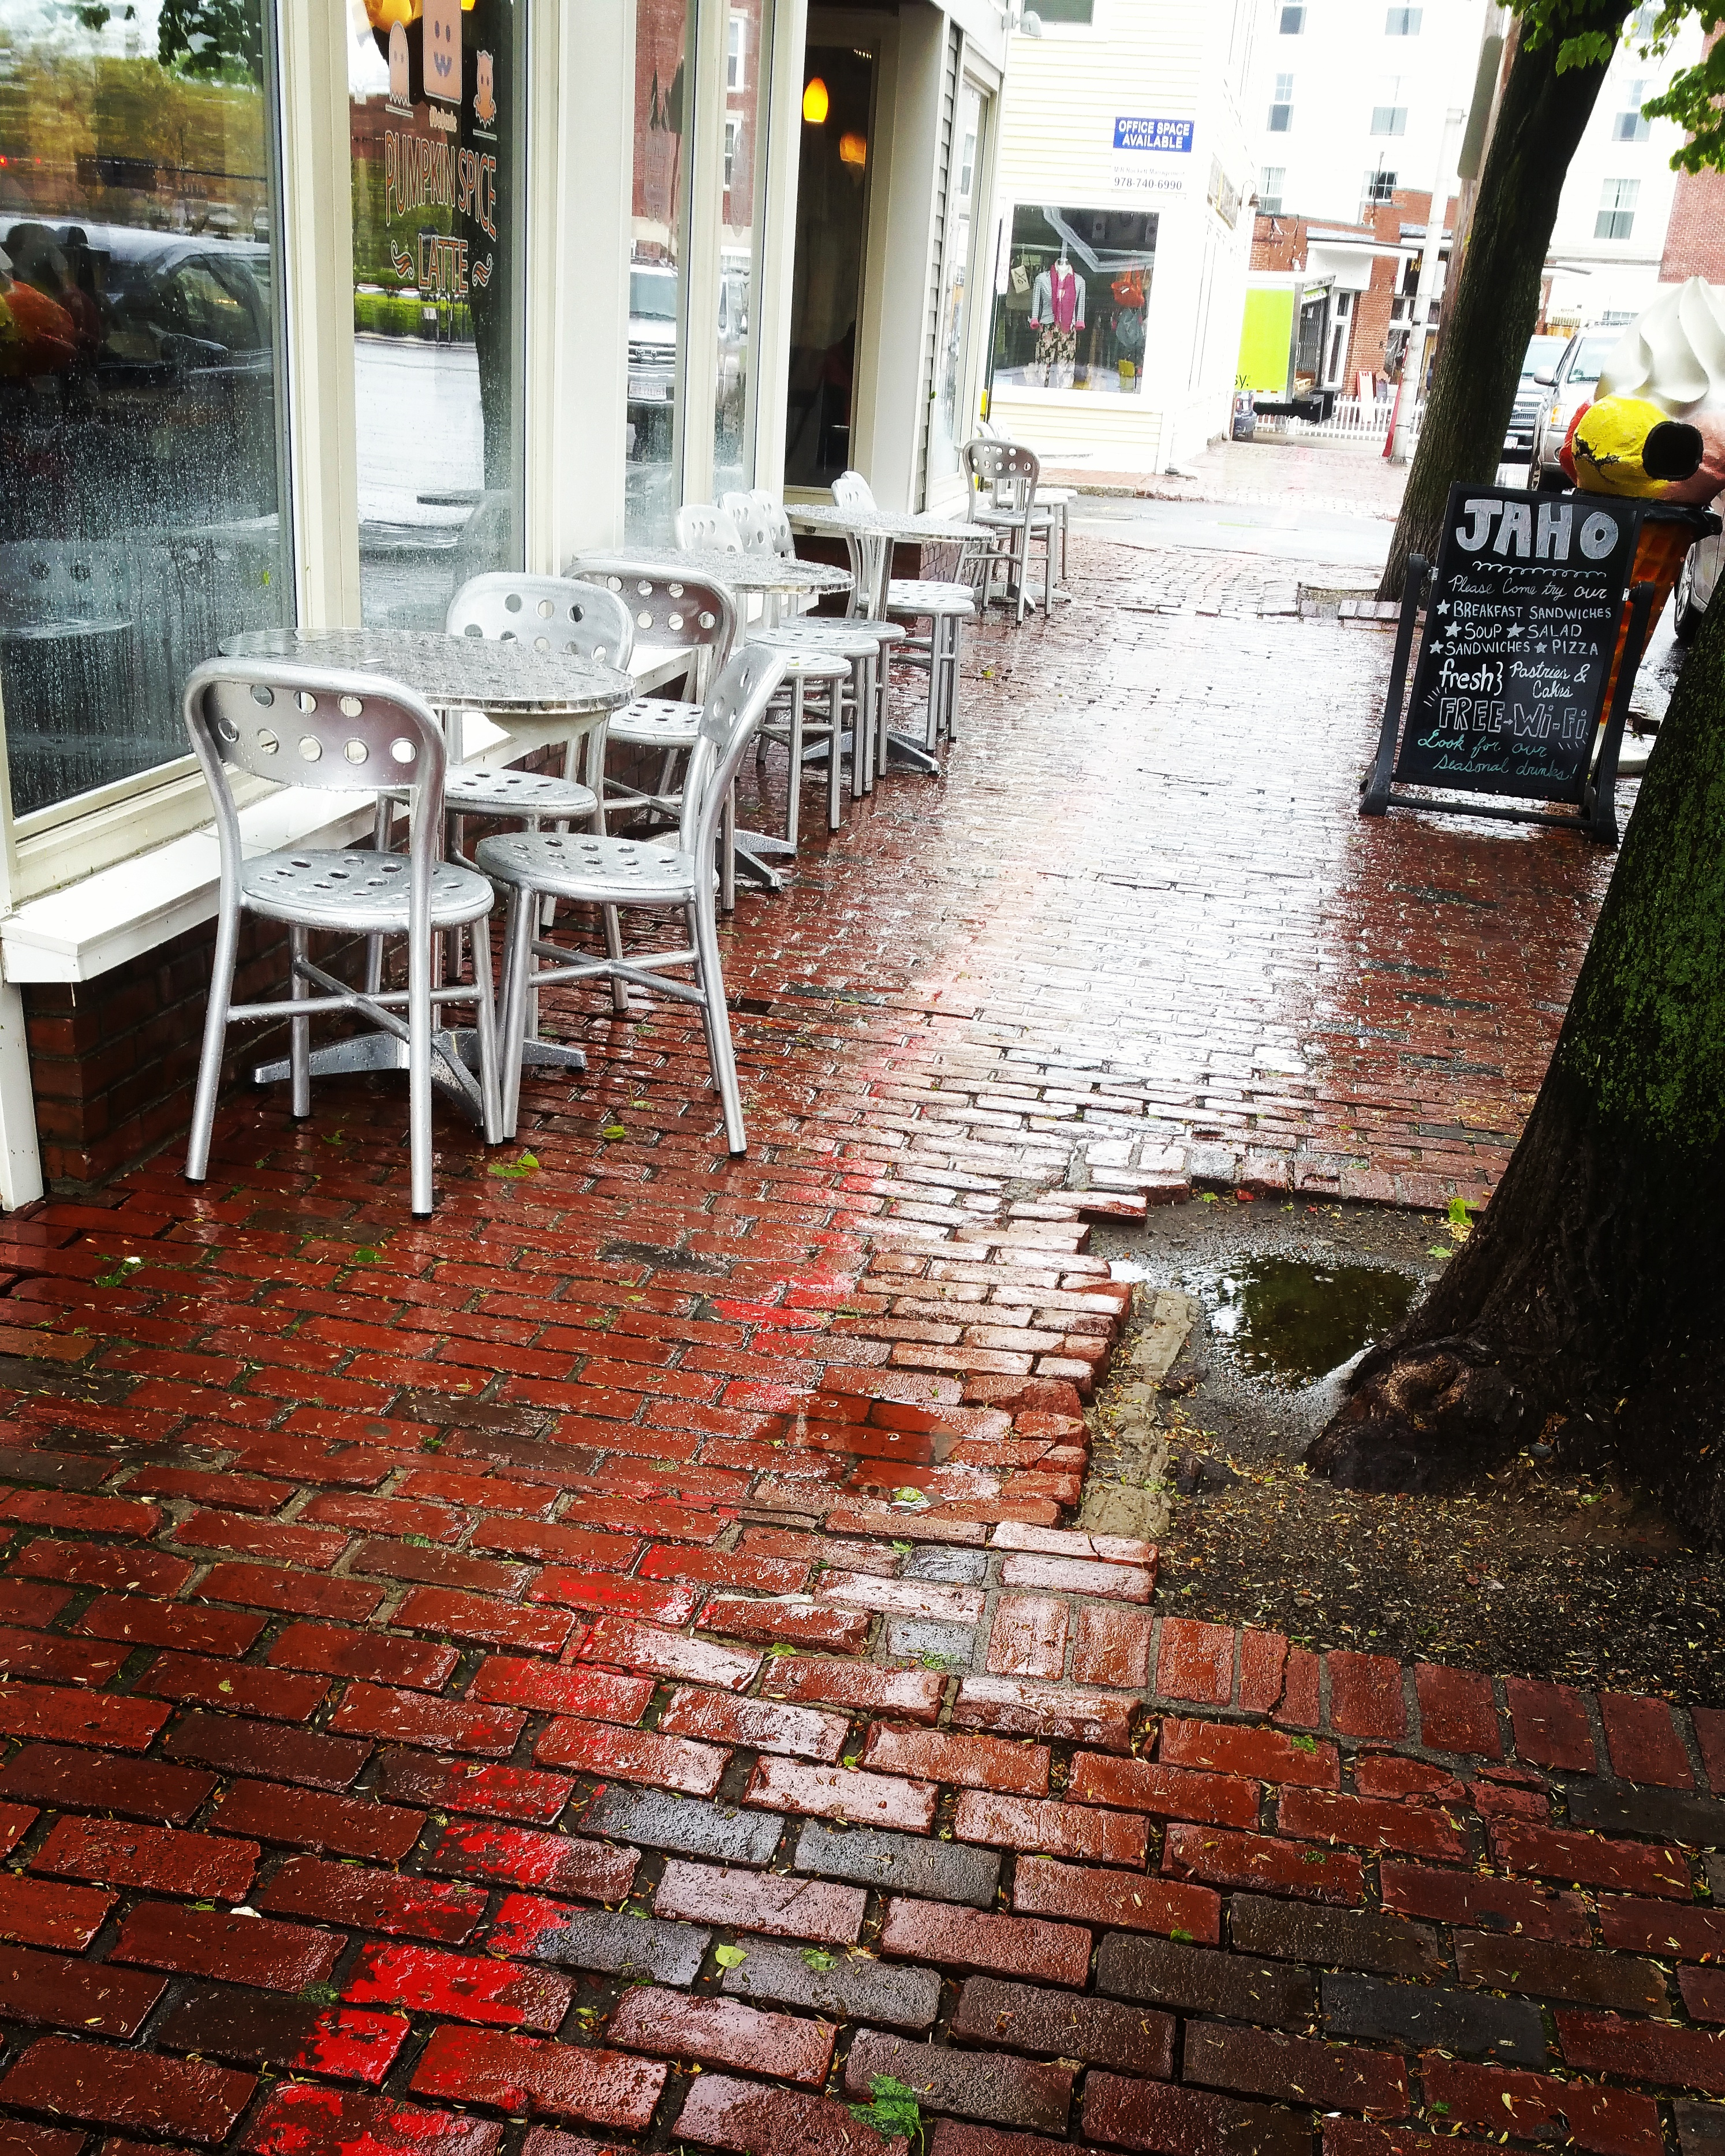 10 Things To Do In Salem, MA On A Rainy Day » Things To Do